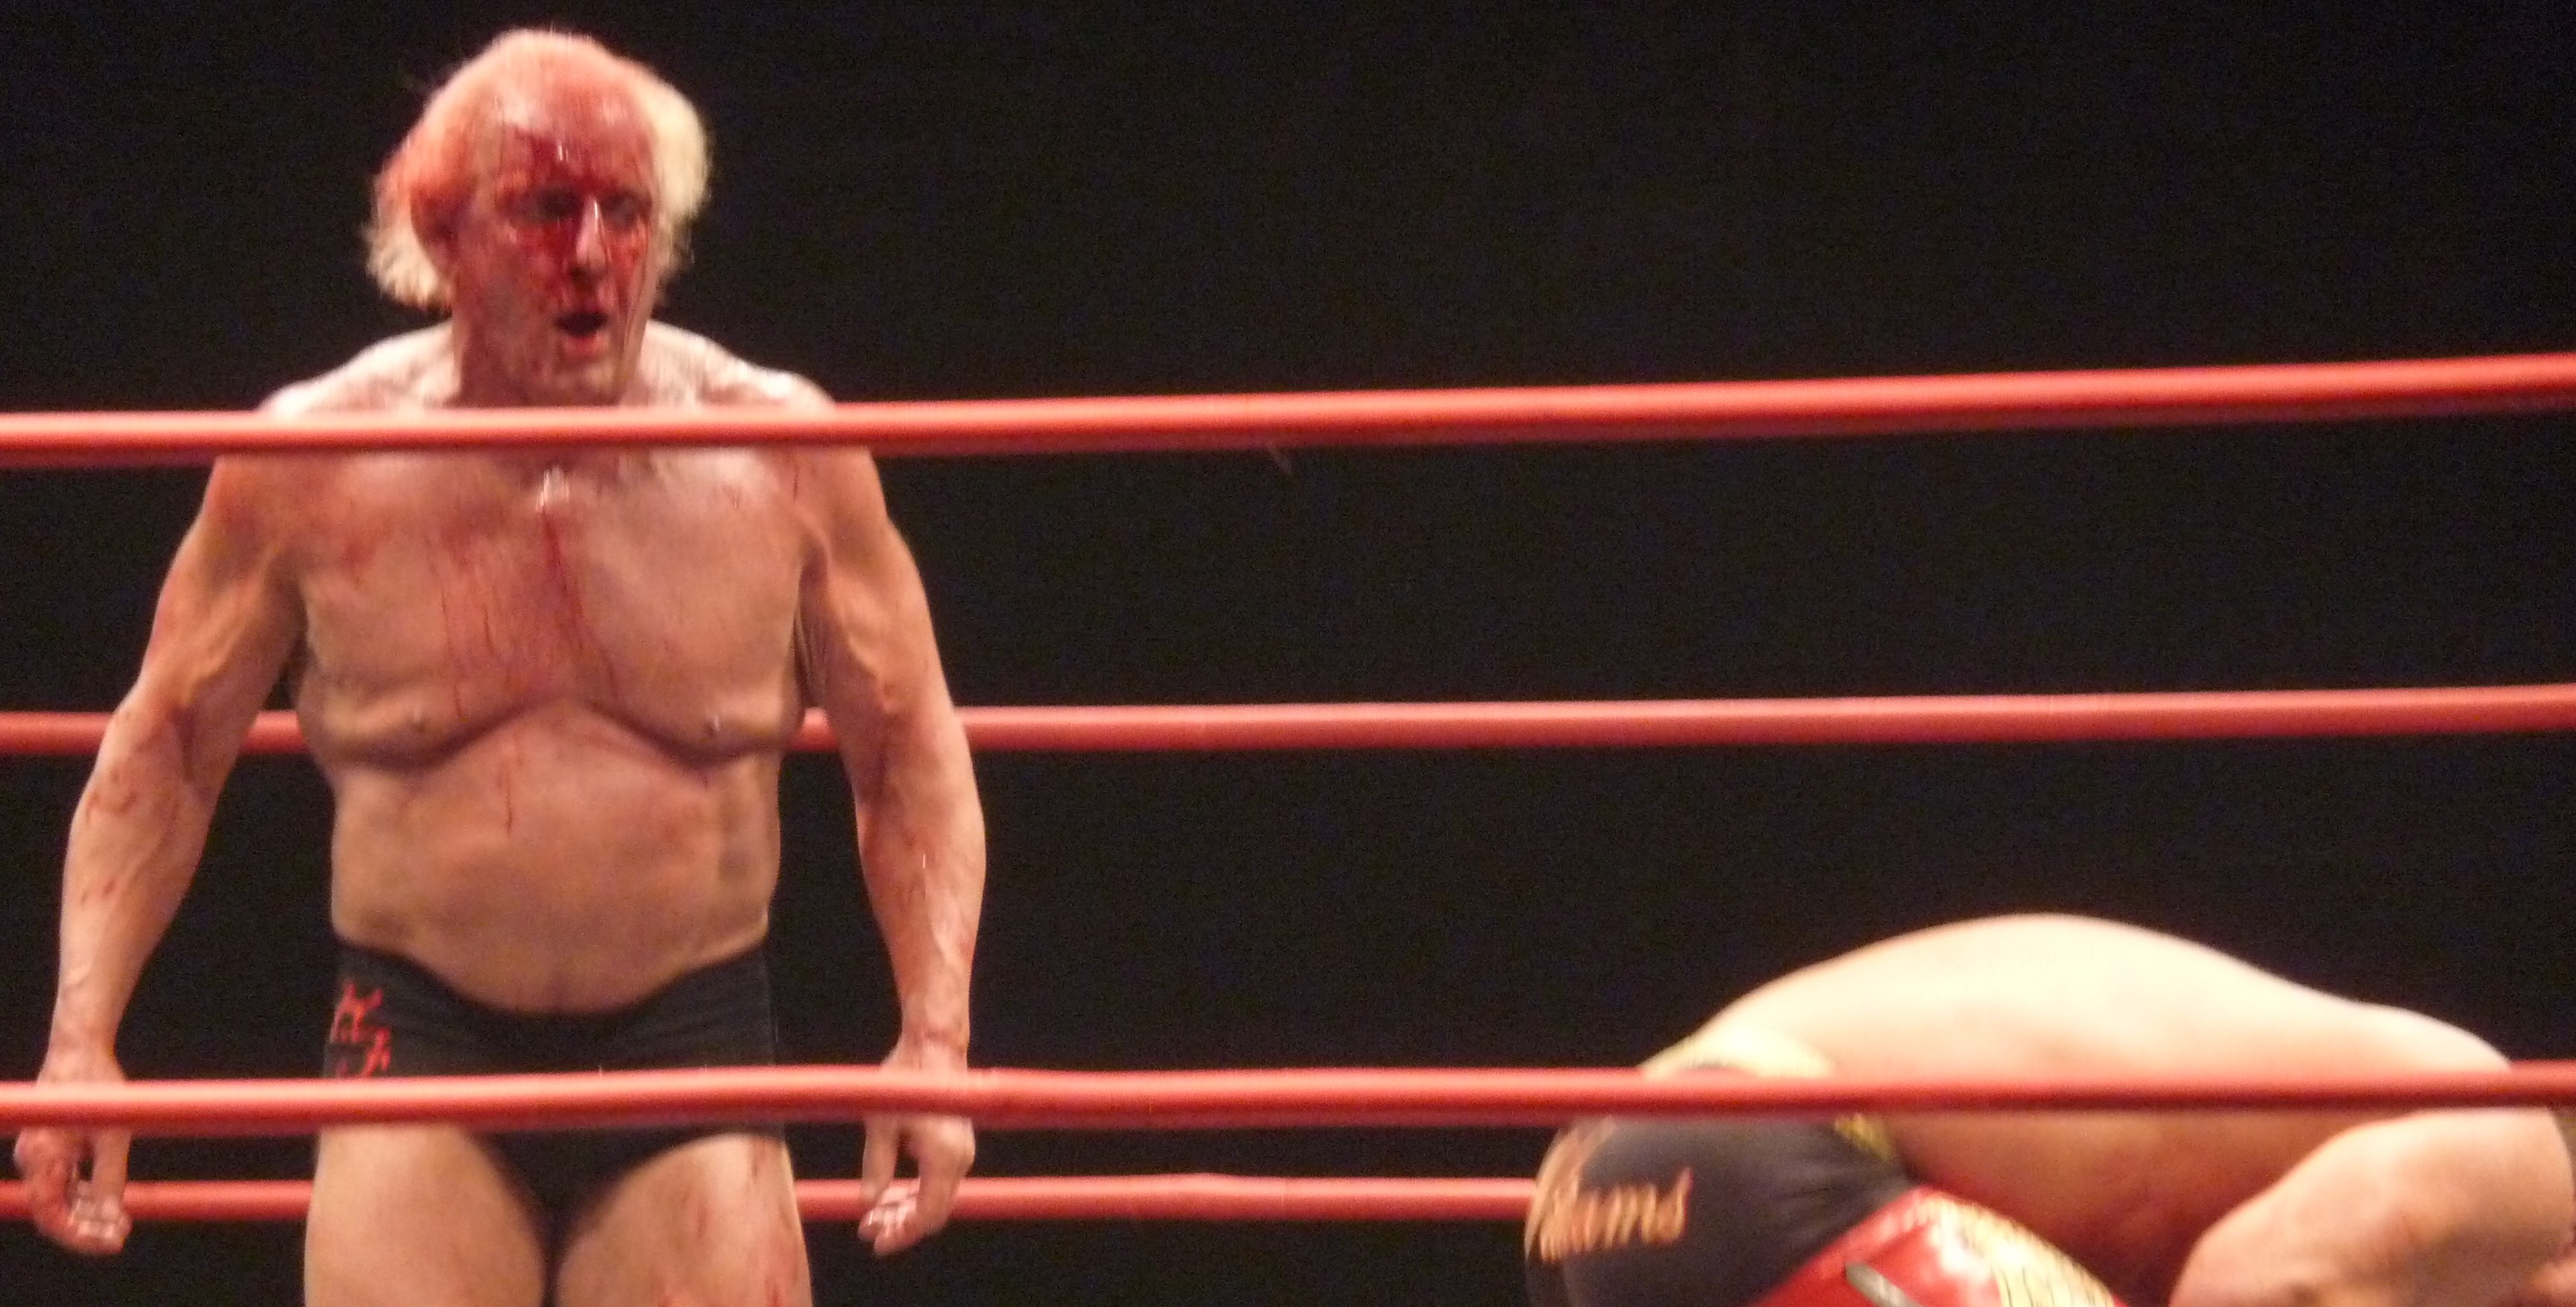 Woooo: Flair's once chiselled physique now looks a little flappy.